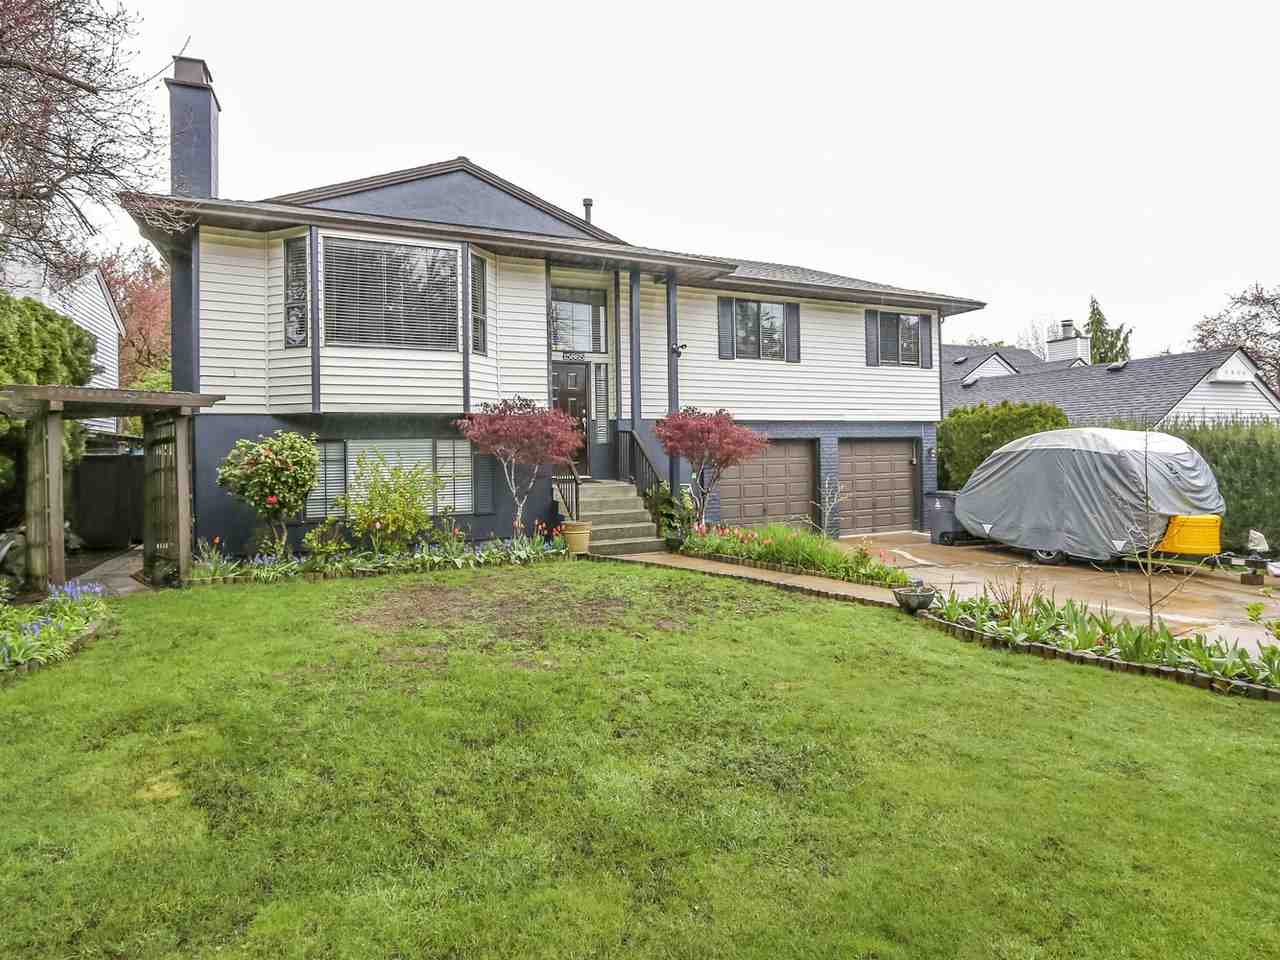 Removed: 15865 101 Avenue, Surrey, BC - Removed on 2019-06-18 05:45:31